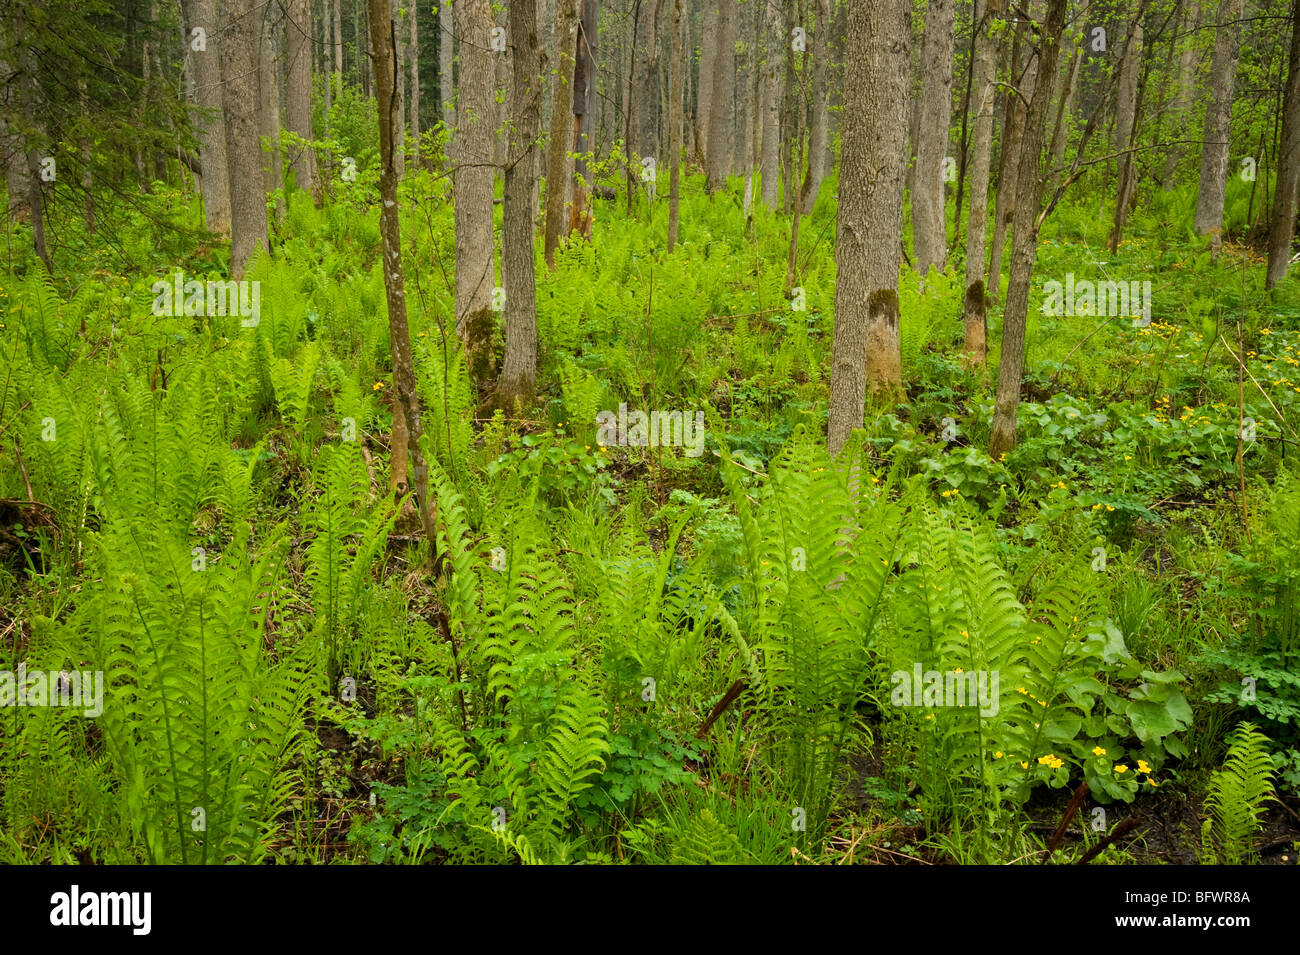 Moist woodland with marsh marigolds and ferns, Killarney, Ontario, Canada - Stock Image